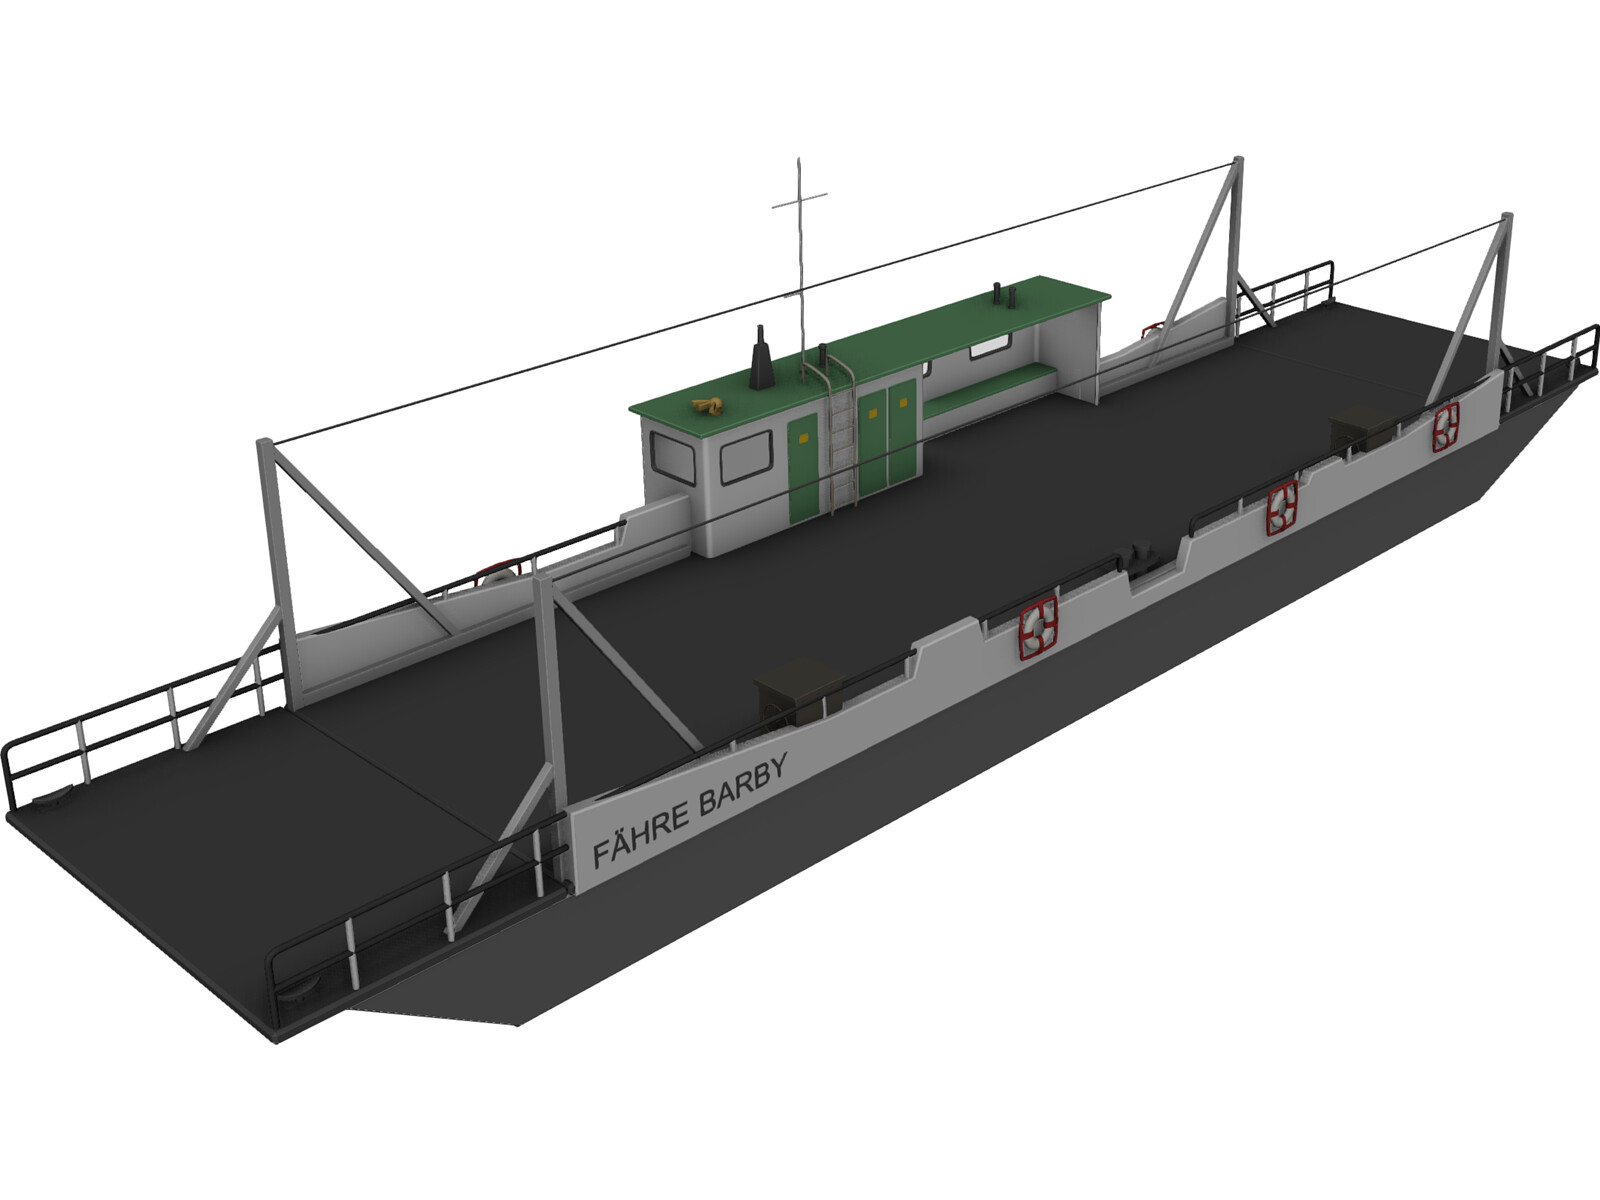 Ferry Barby 3D Model